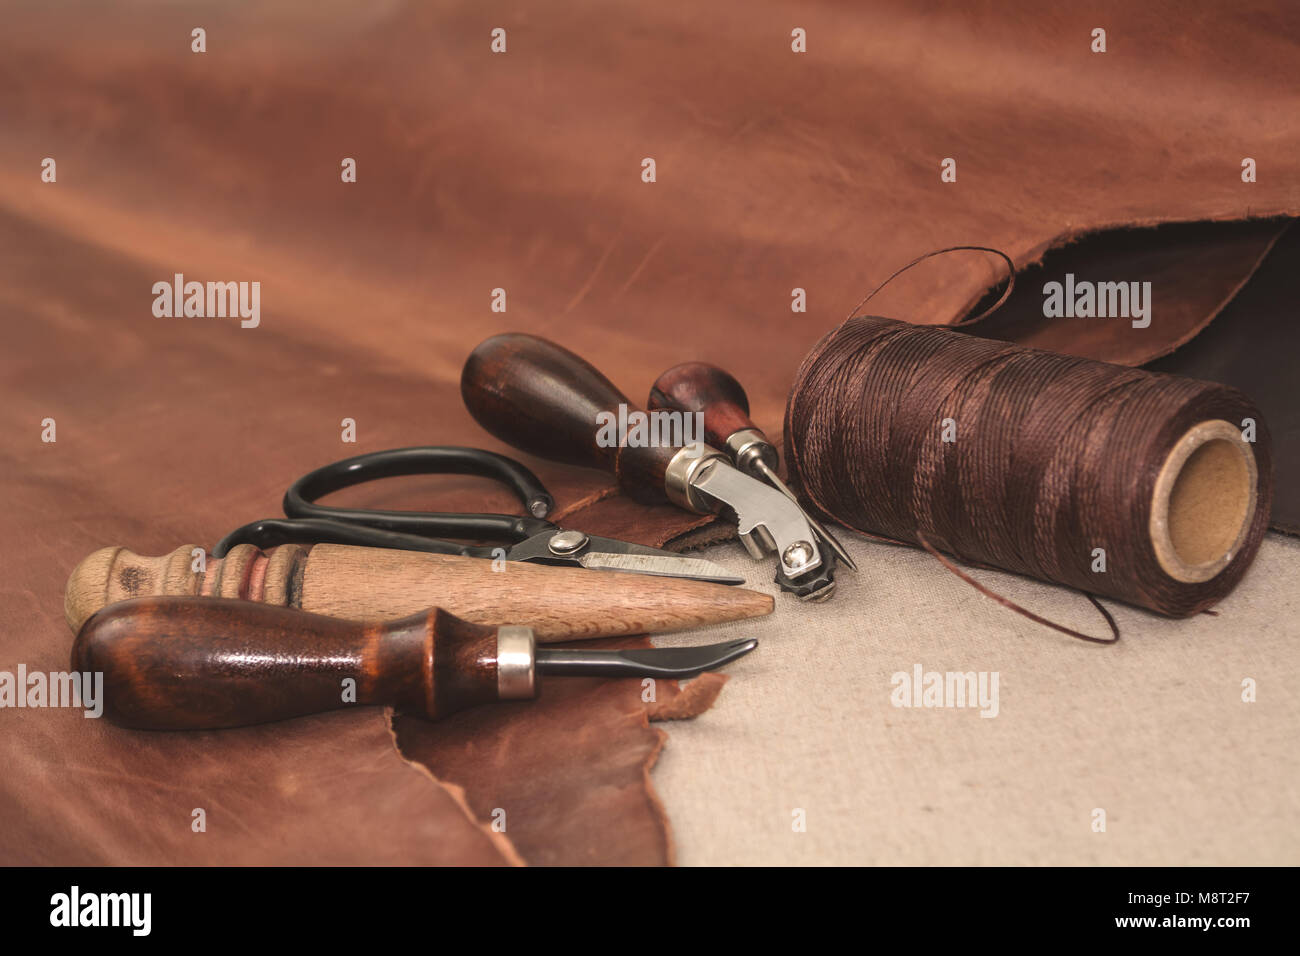 Tools for leather crafting and pieces of brown leather Stock Photo